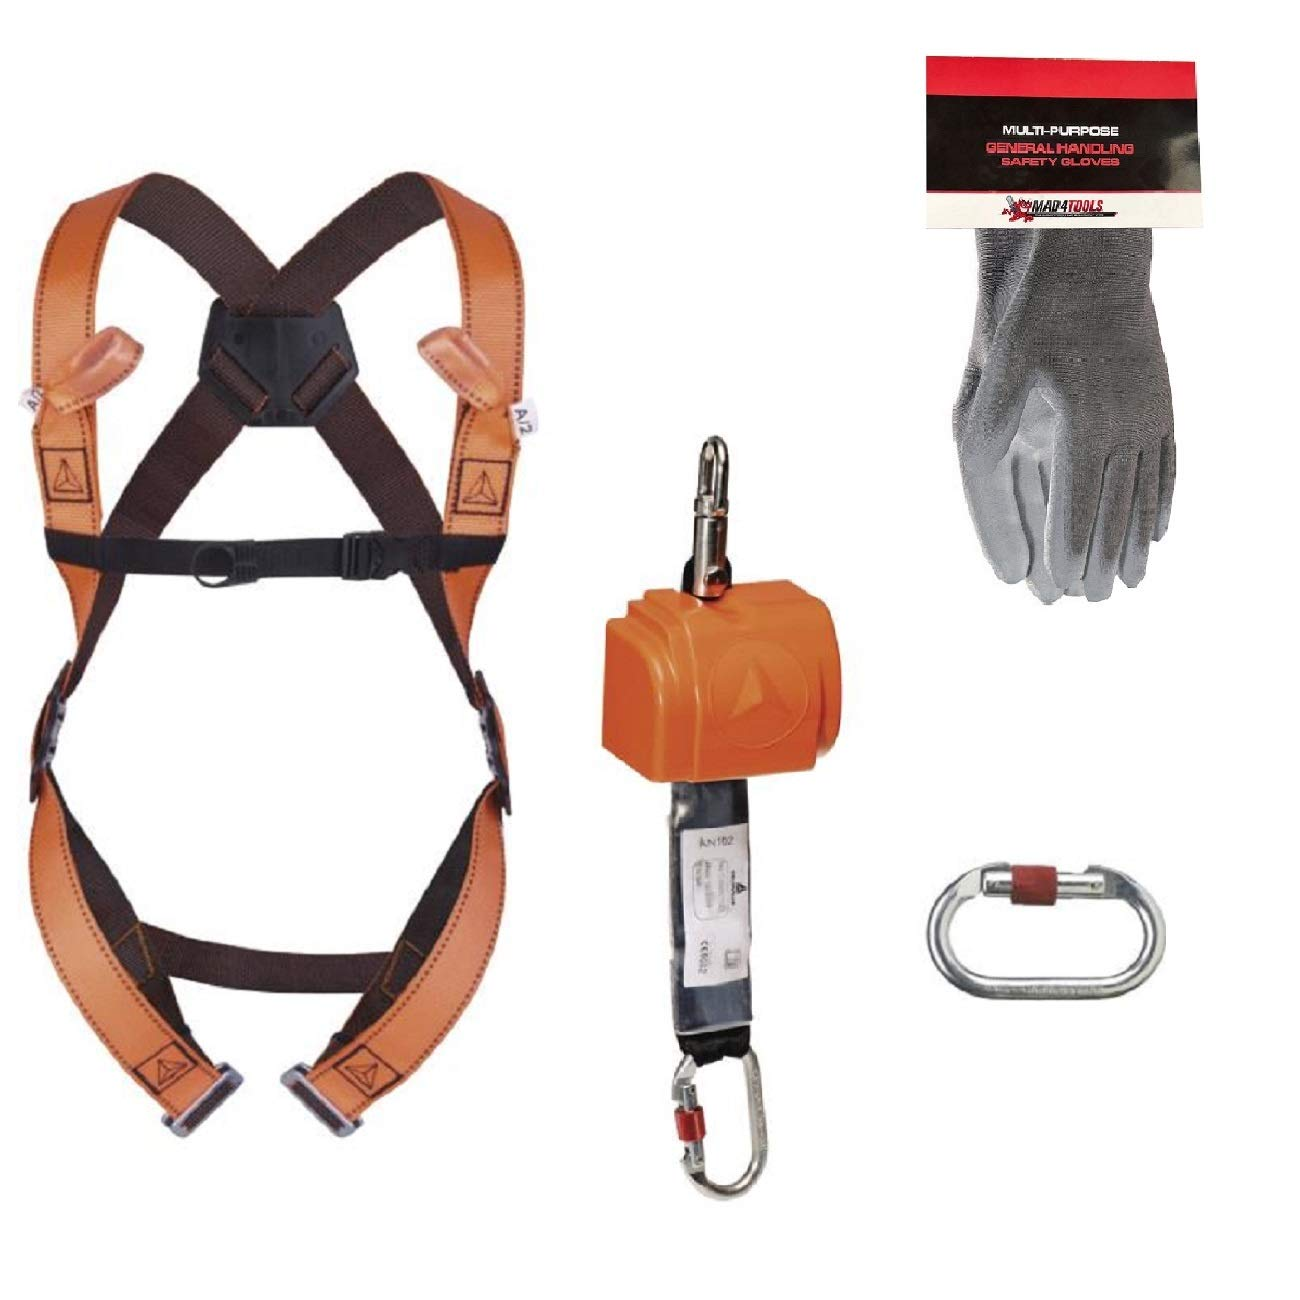 Delta Plus ELARA140 Fall Arrester System and Safety Gloves (S-L) mad4tools